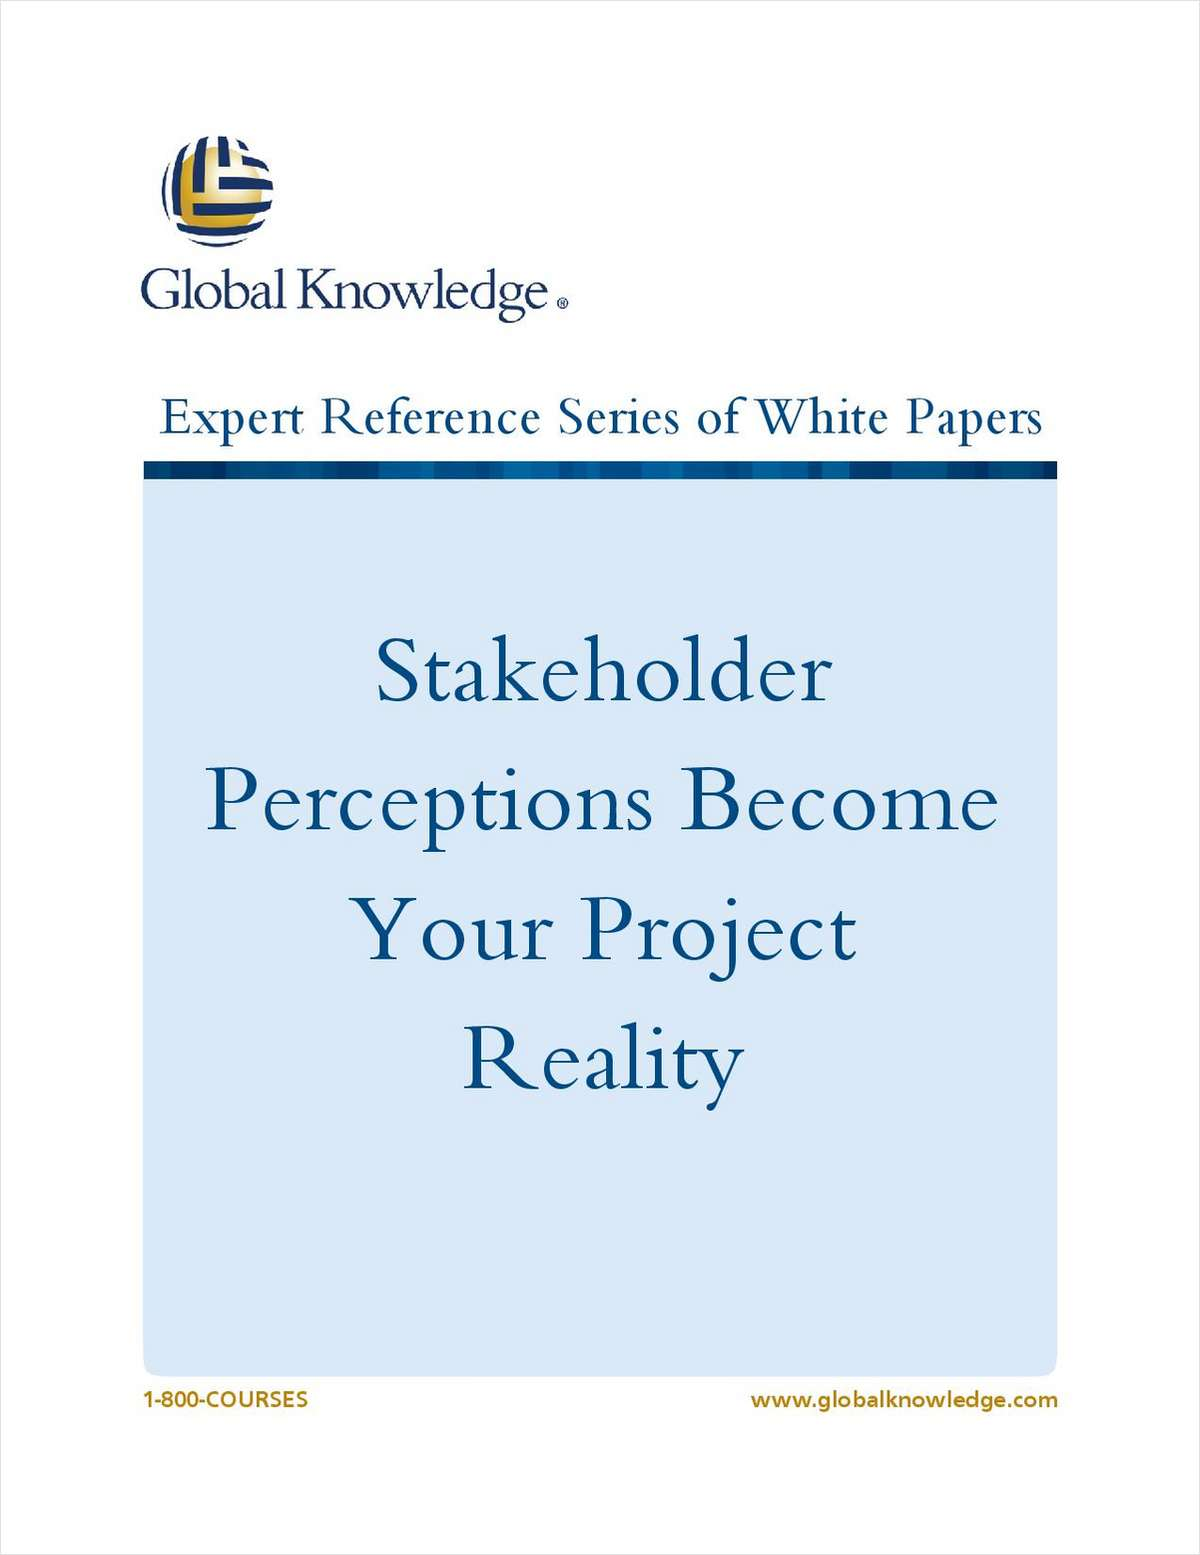 Stakeholder Perceptions Become Your Project Reality